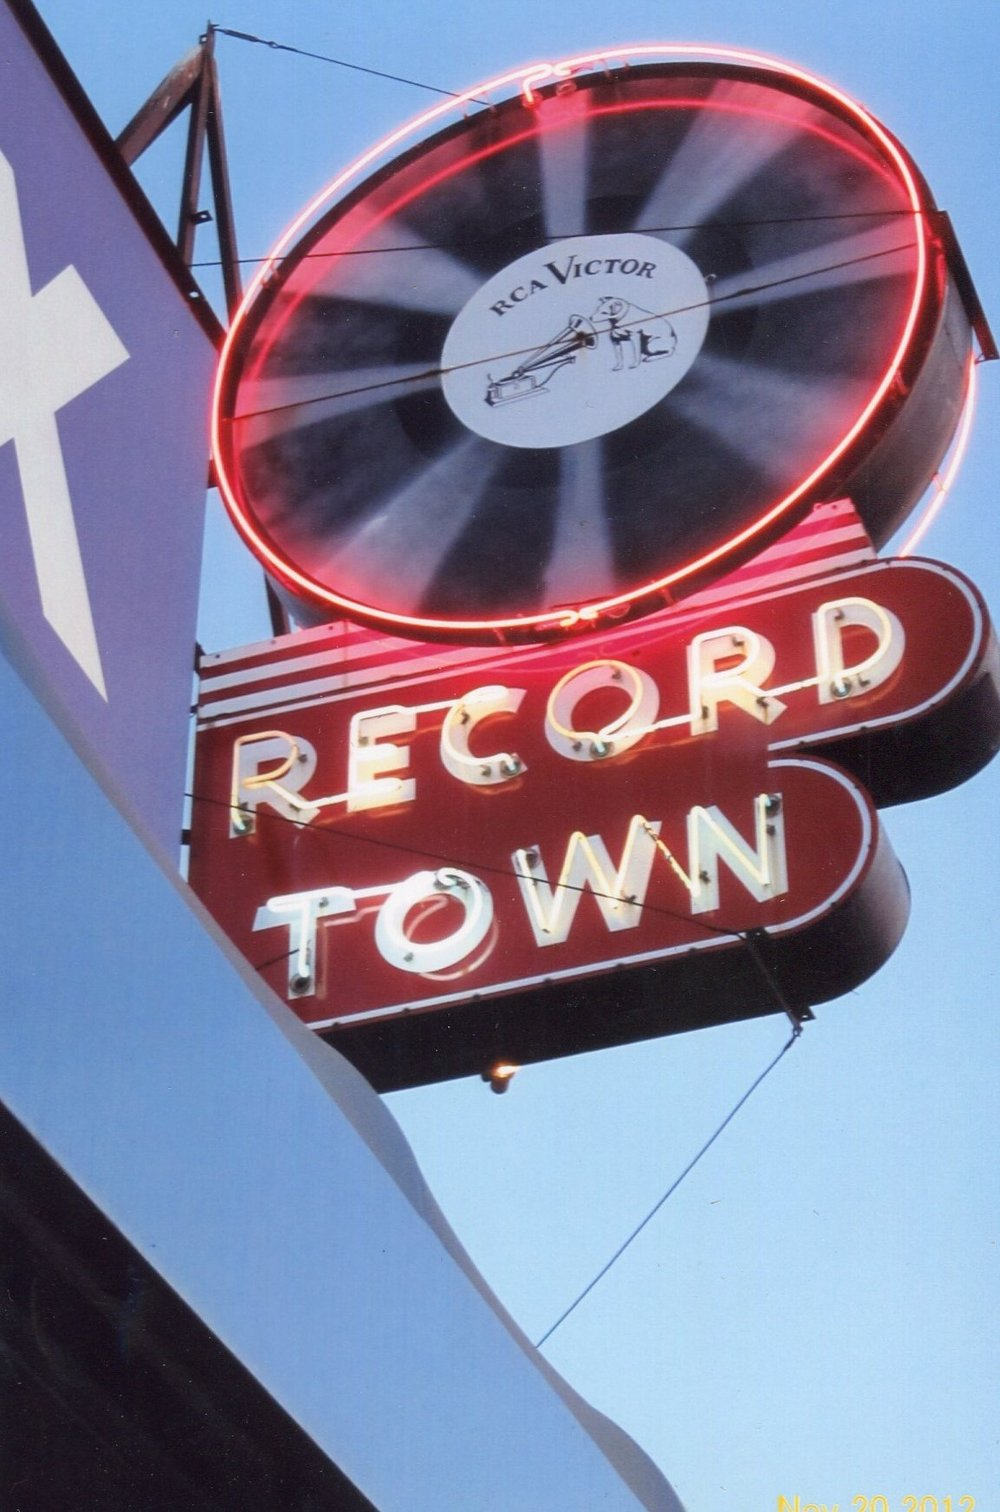 Record Town Neon Sign in the Day 1.jpg